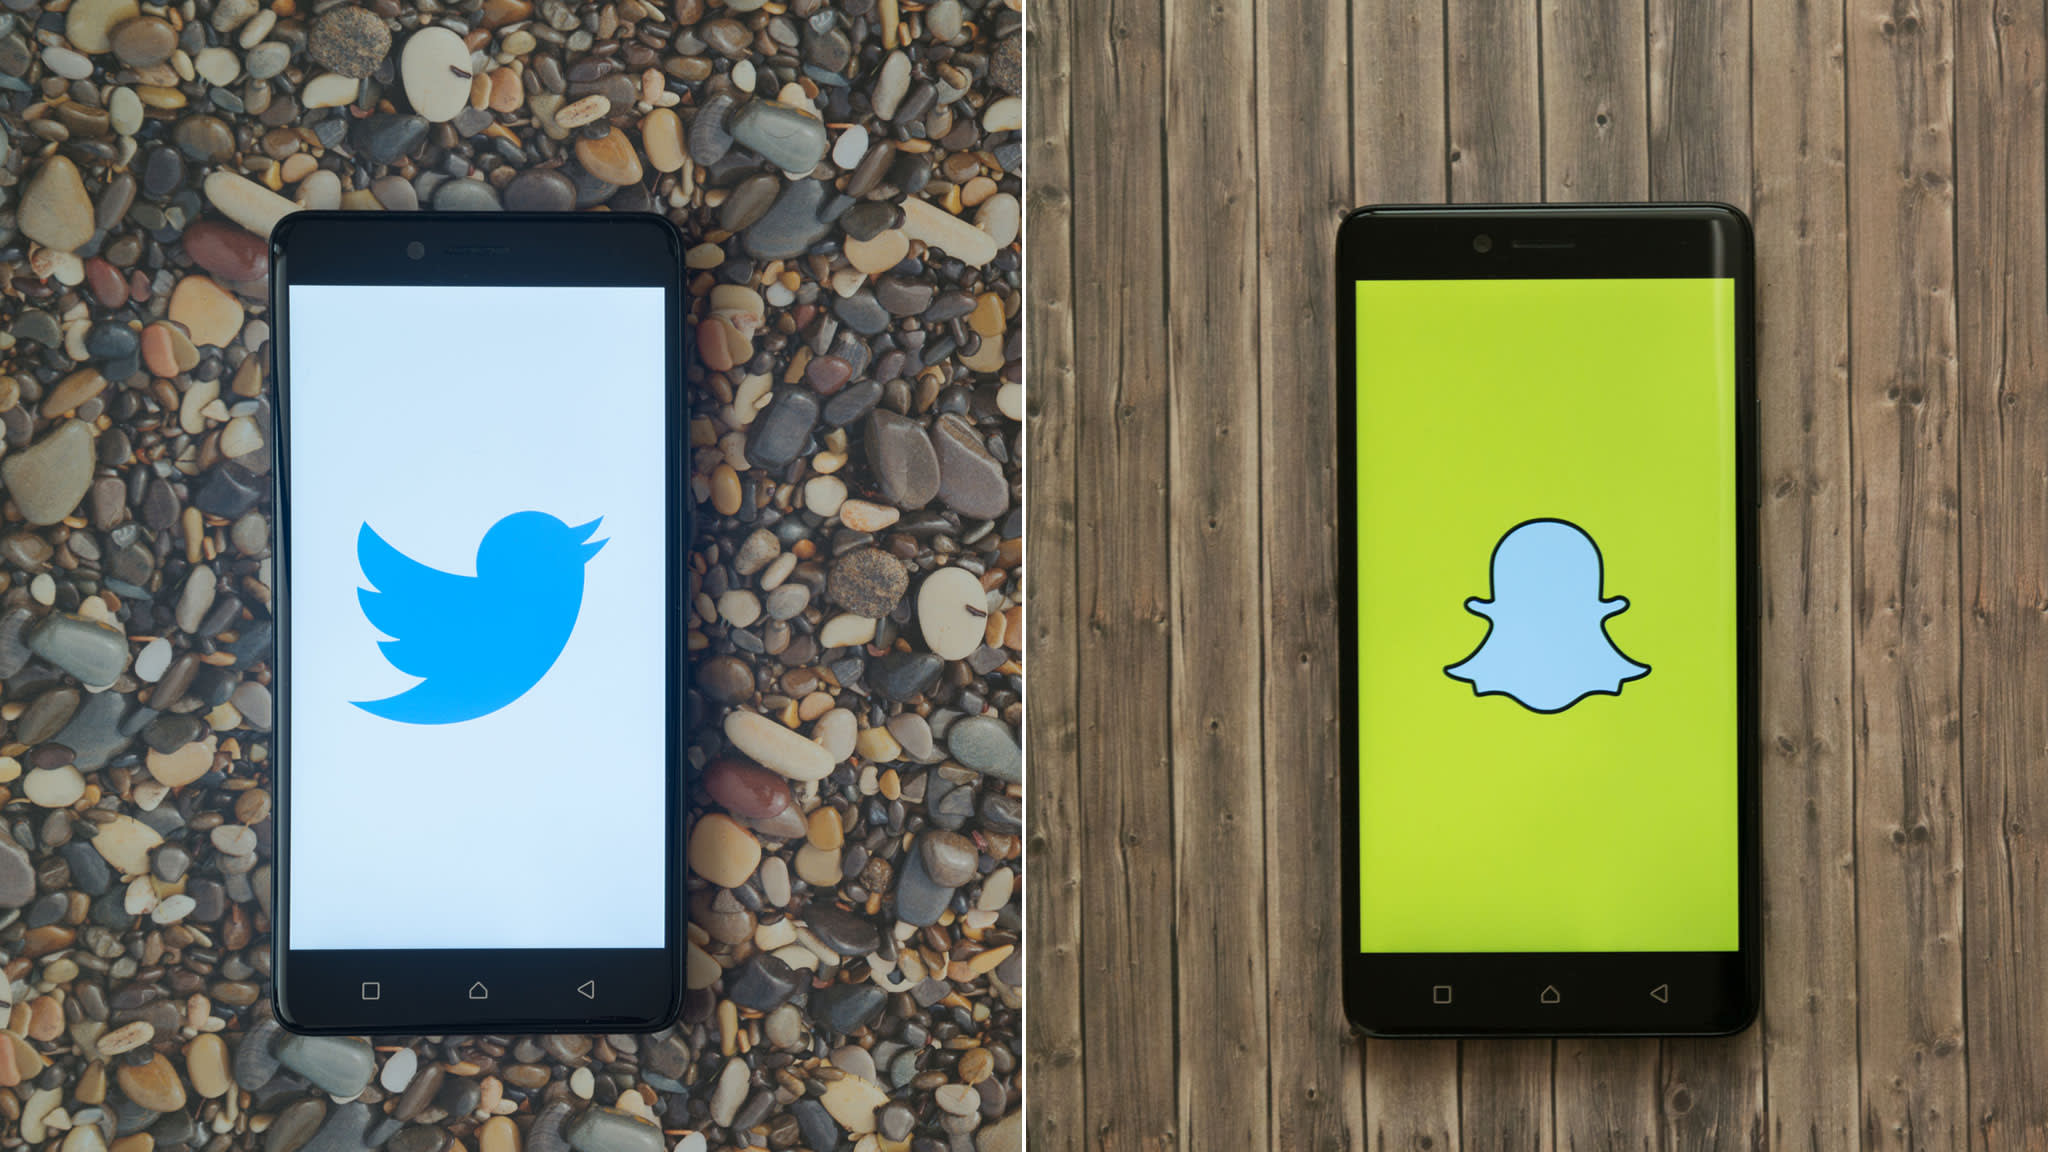 Twitter and Snap make their pitch for ad sales